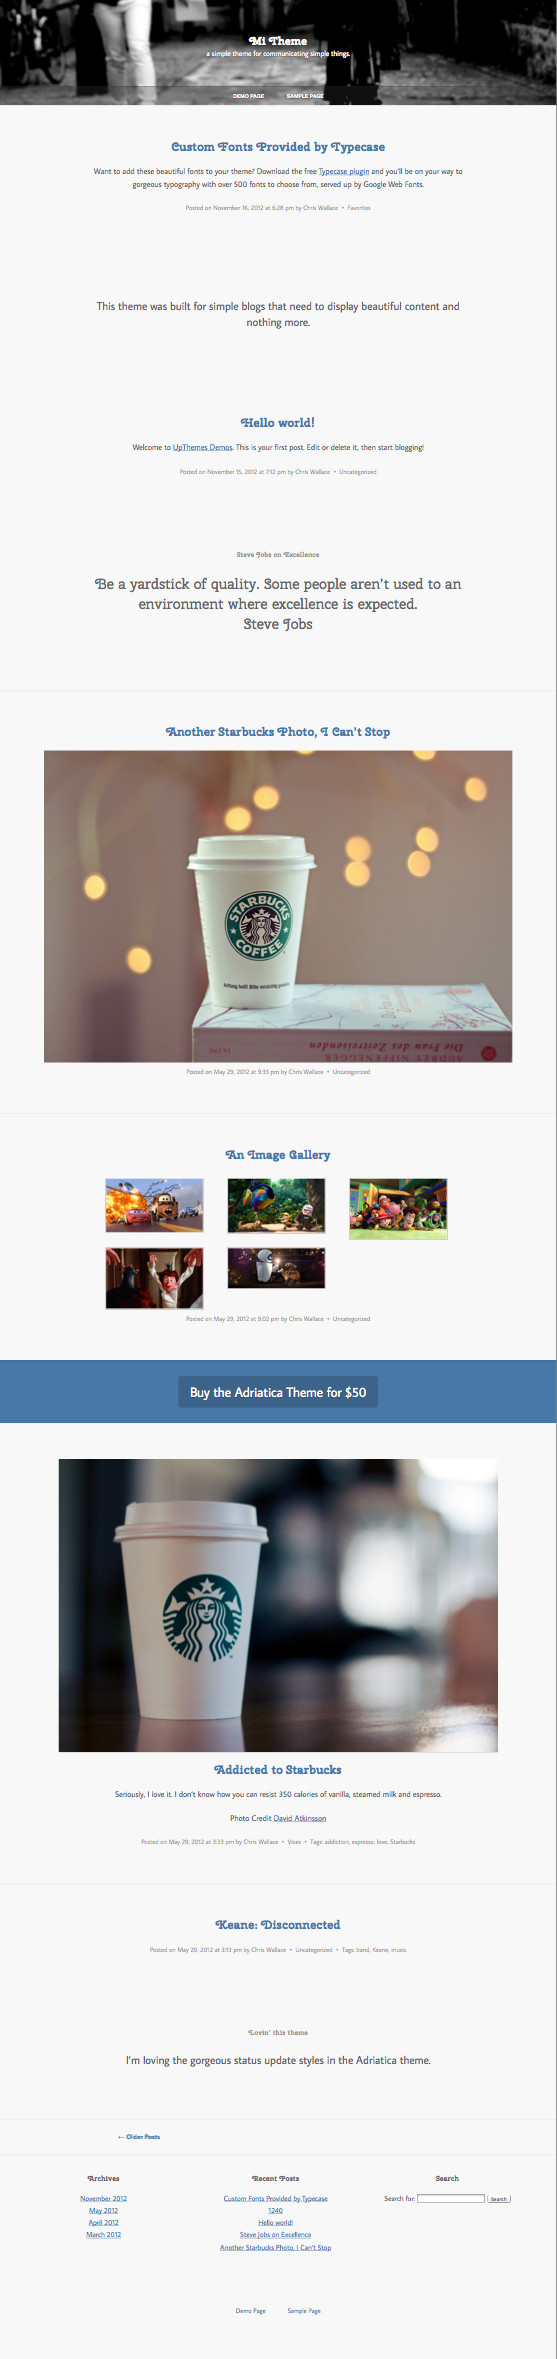 Mi WordPress Tumblr Posts Theme